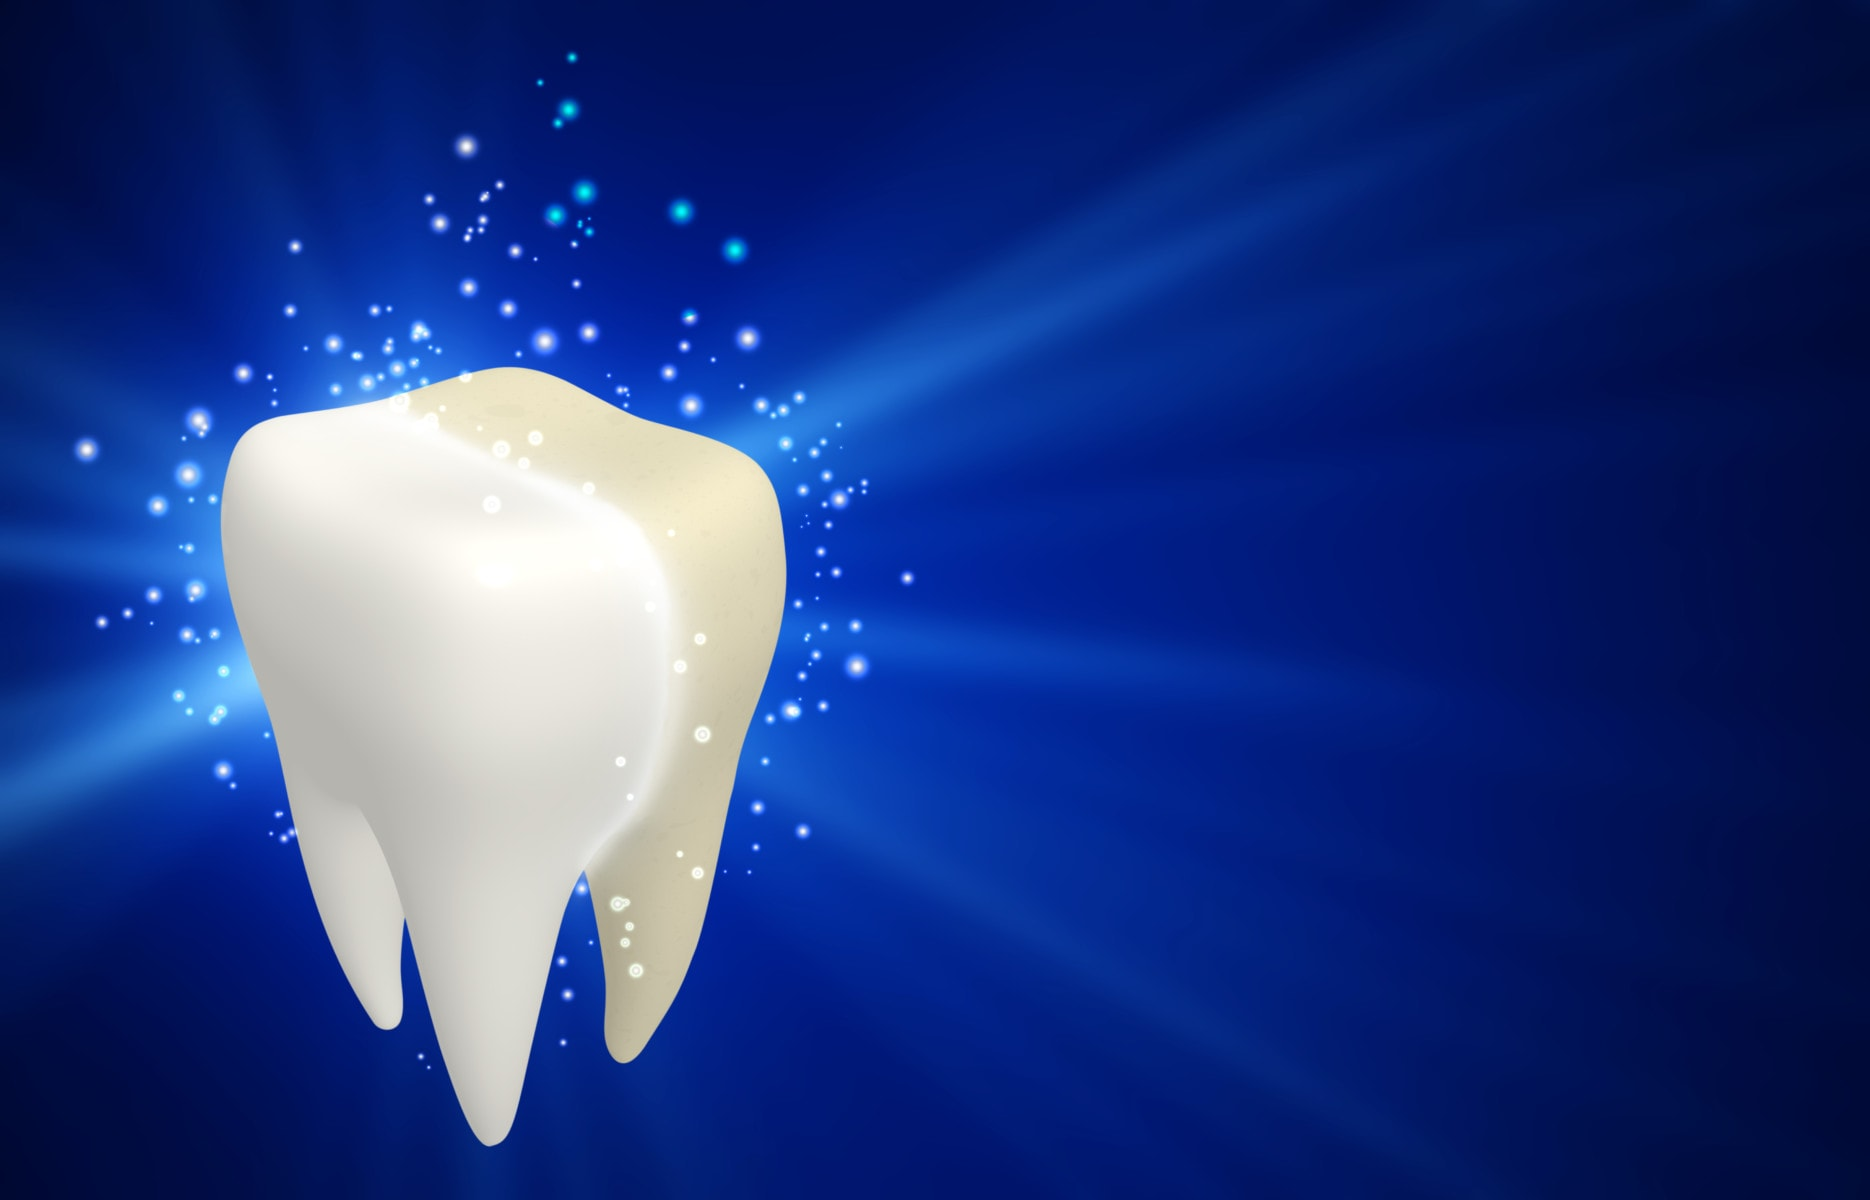 Cleaning tooth process. One human tooth and magic sparks around on blue background. 3d render